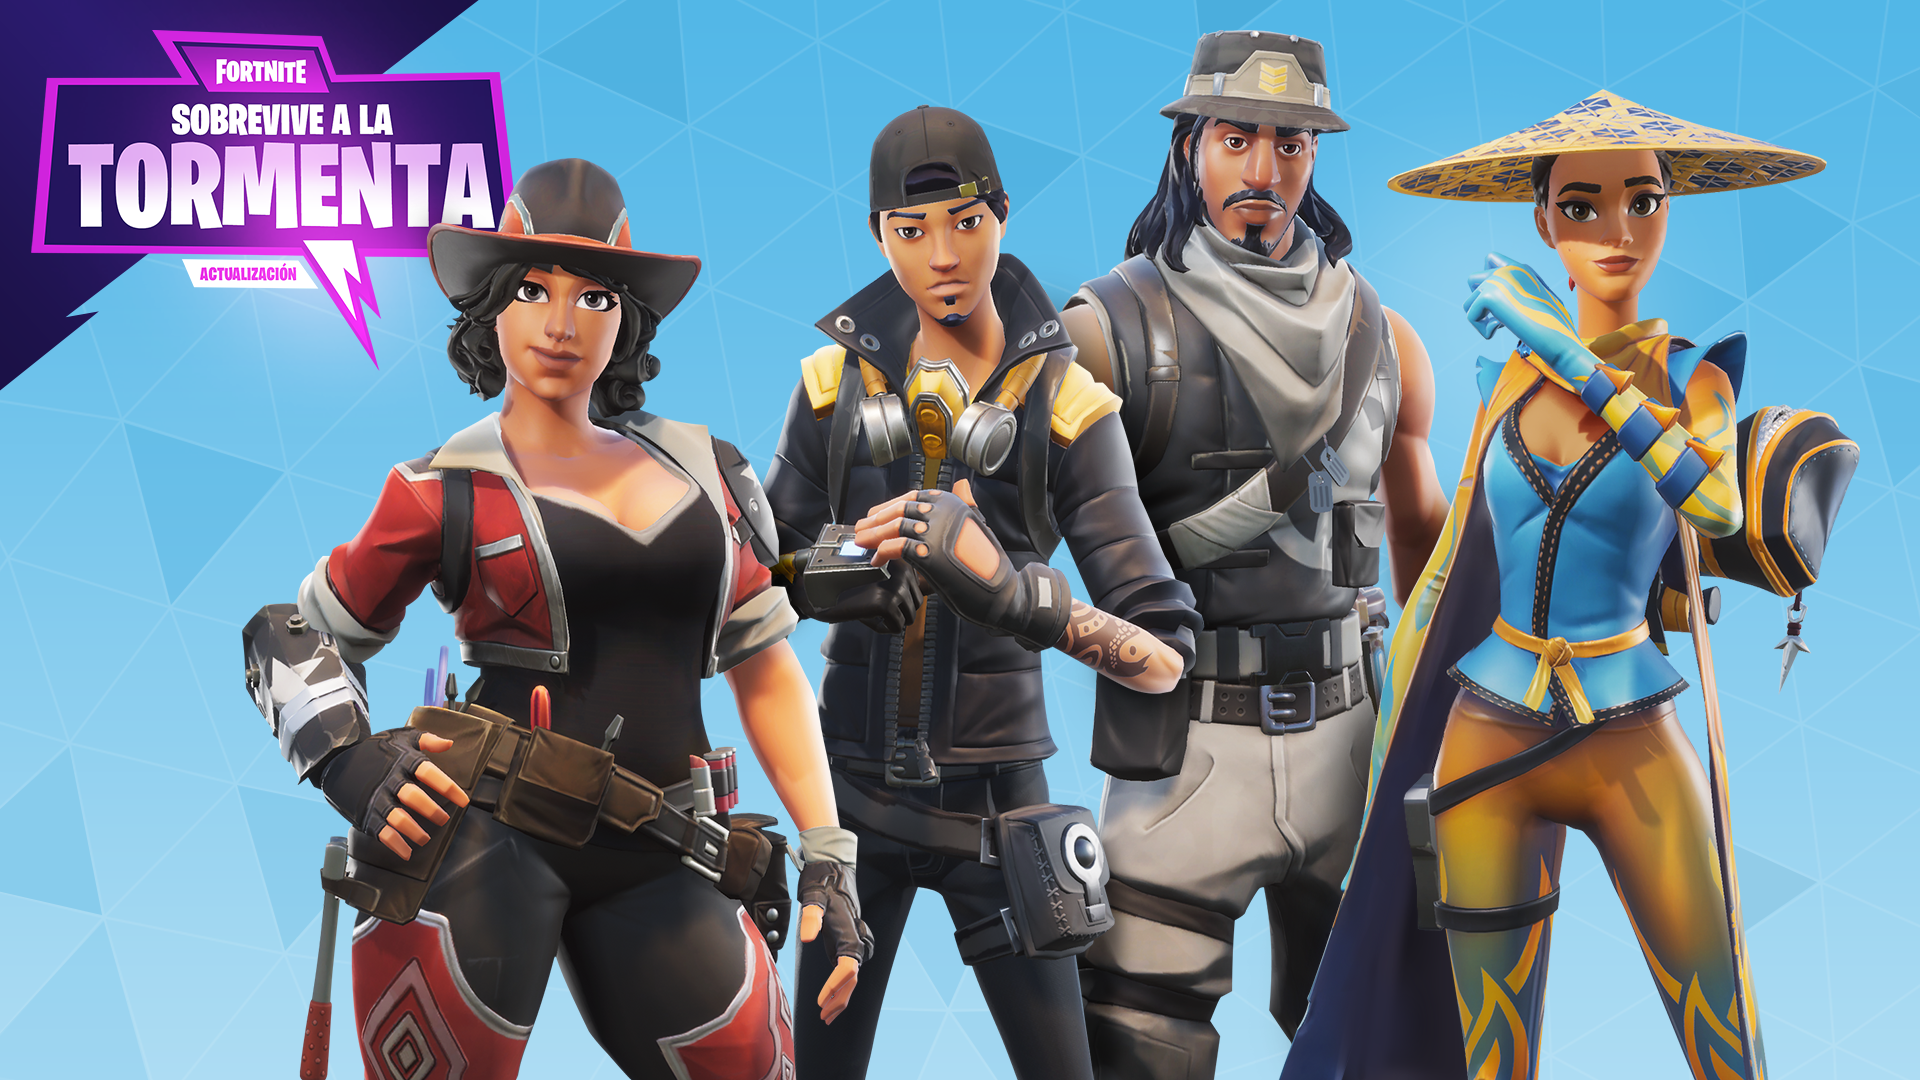 Fortnite%2Fblog%2Fsurvive-the-storm---release-notes%2FES_New-Hereos-1920x1080-7731a132ae5db90cff83022ef4e1bd446c3f3af6